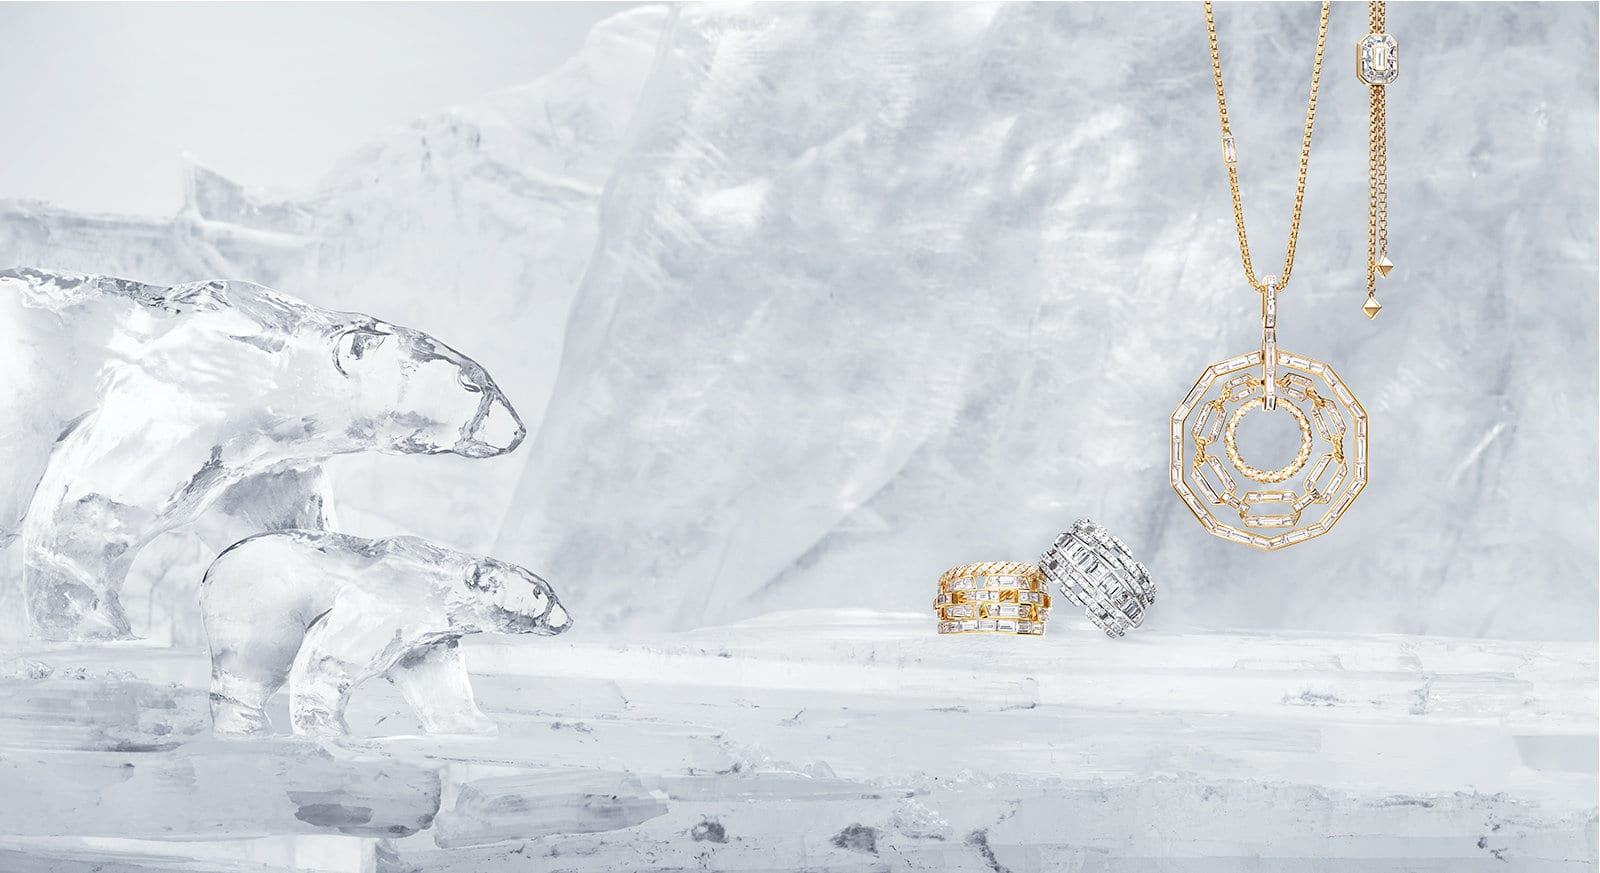 Two polar bear ice sculptures look across a frozen landscape at two Stax rings in 18K yellow or white gold with diamonds and a Stax pendant in 18K yellow gold with diamonds, all from the High Jewelry Collection.